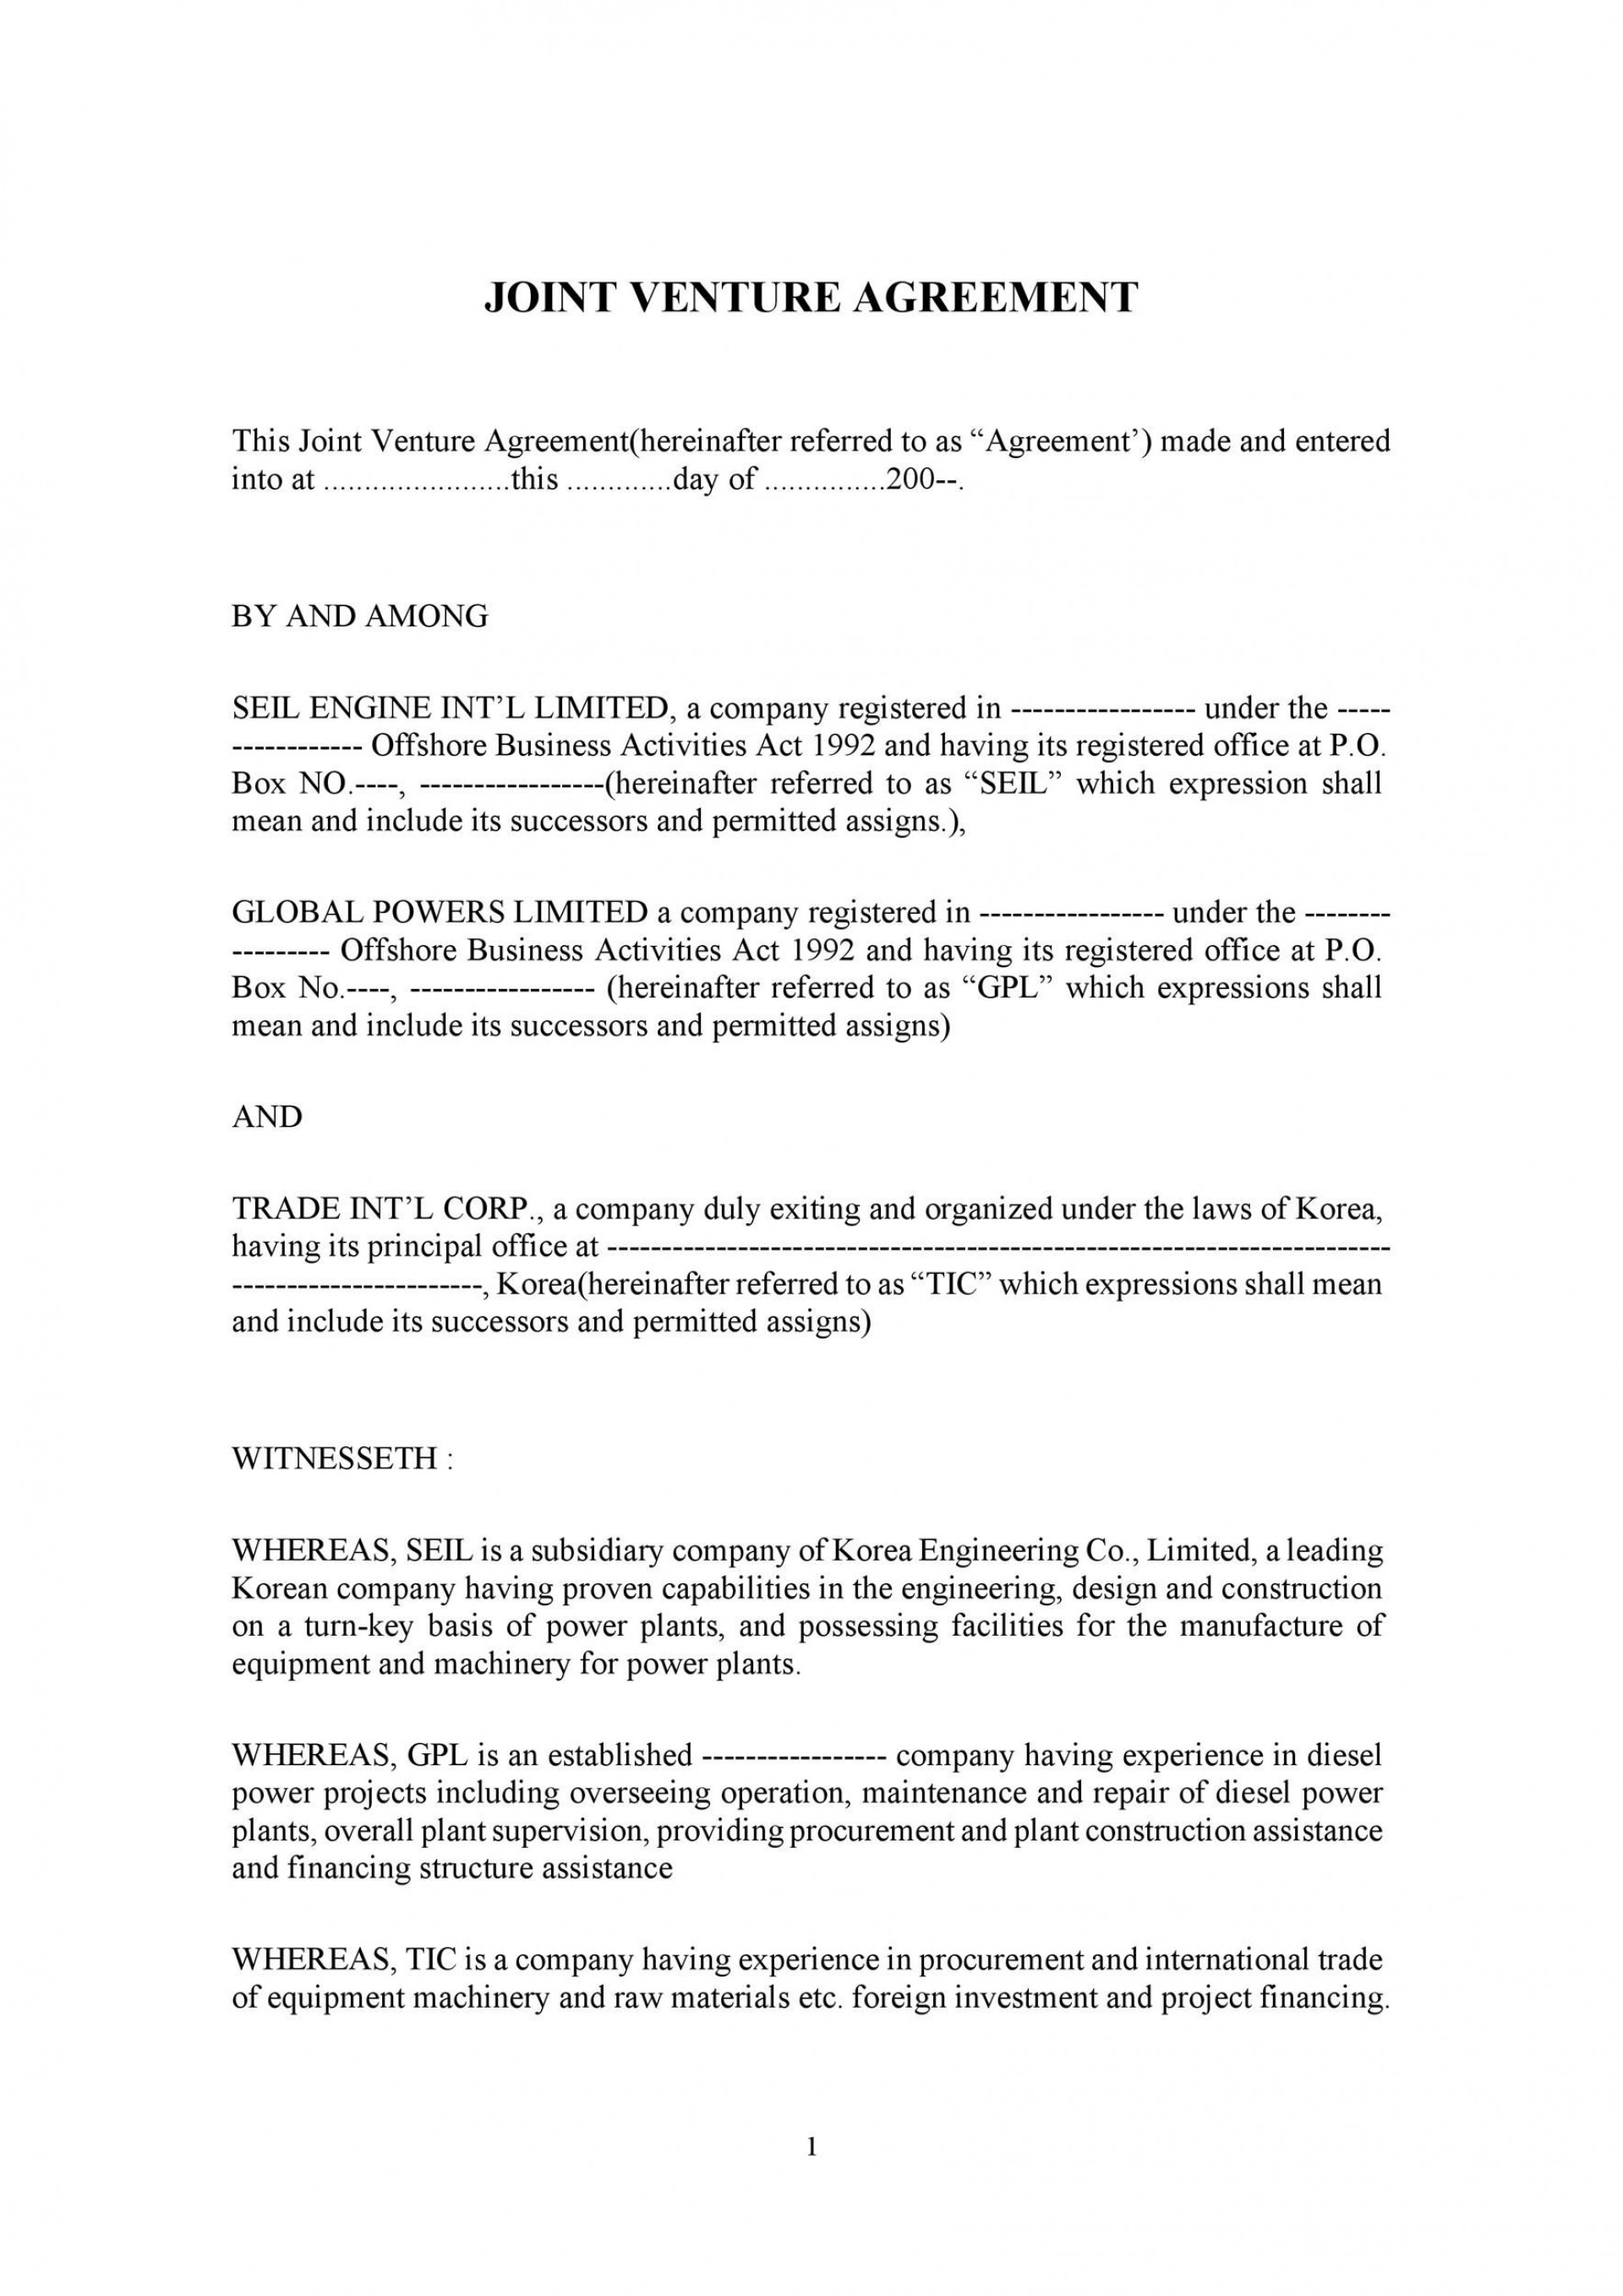 005 Remarkable Joint Venture Agreement Template High Definition  South African Doc Uk Property Development1920